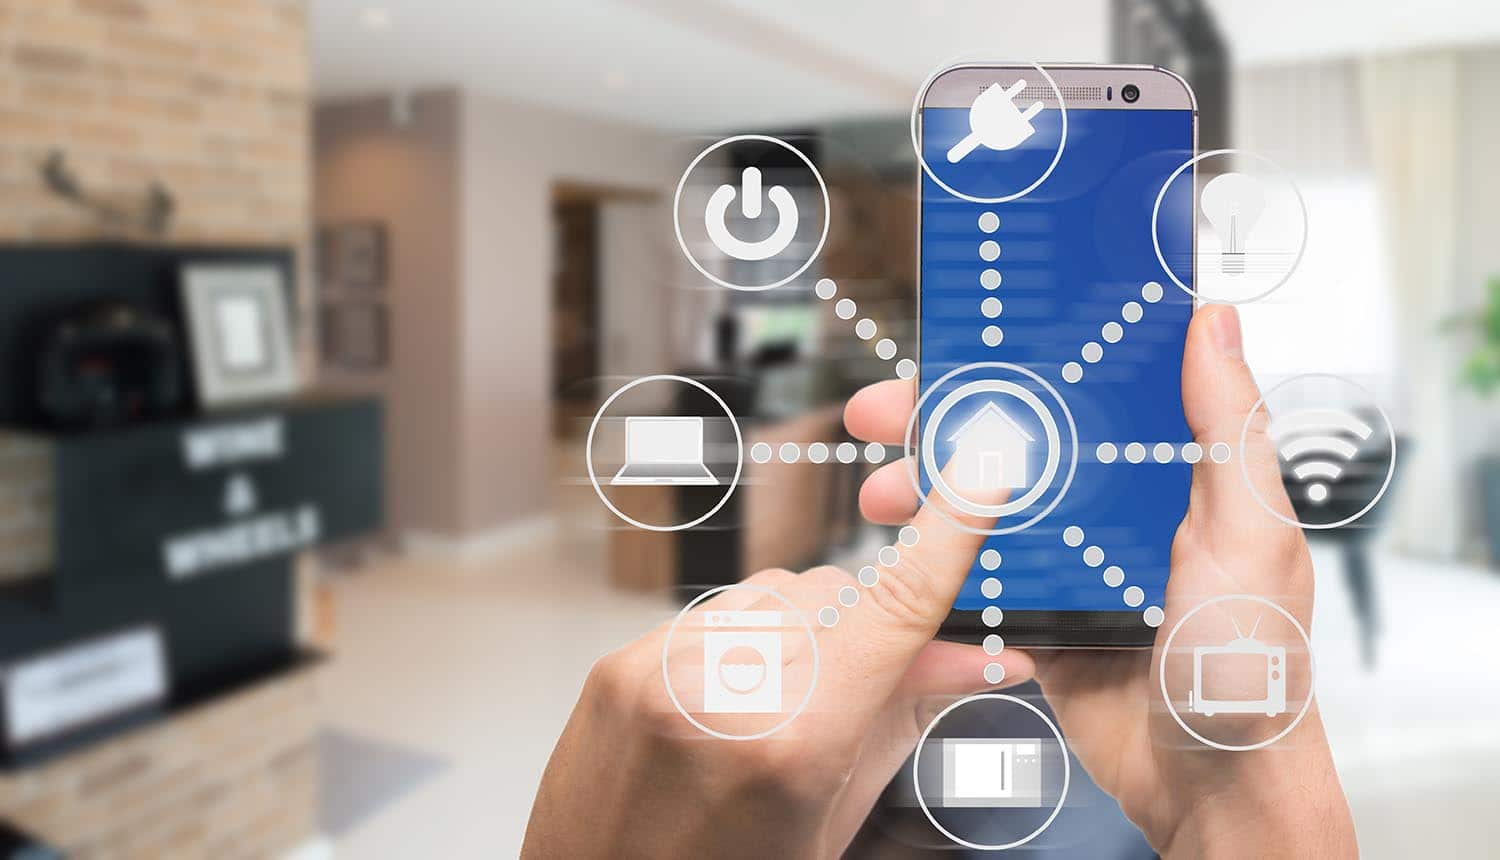 5 simple iot devices that can become entry points for